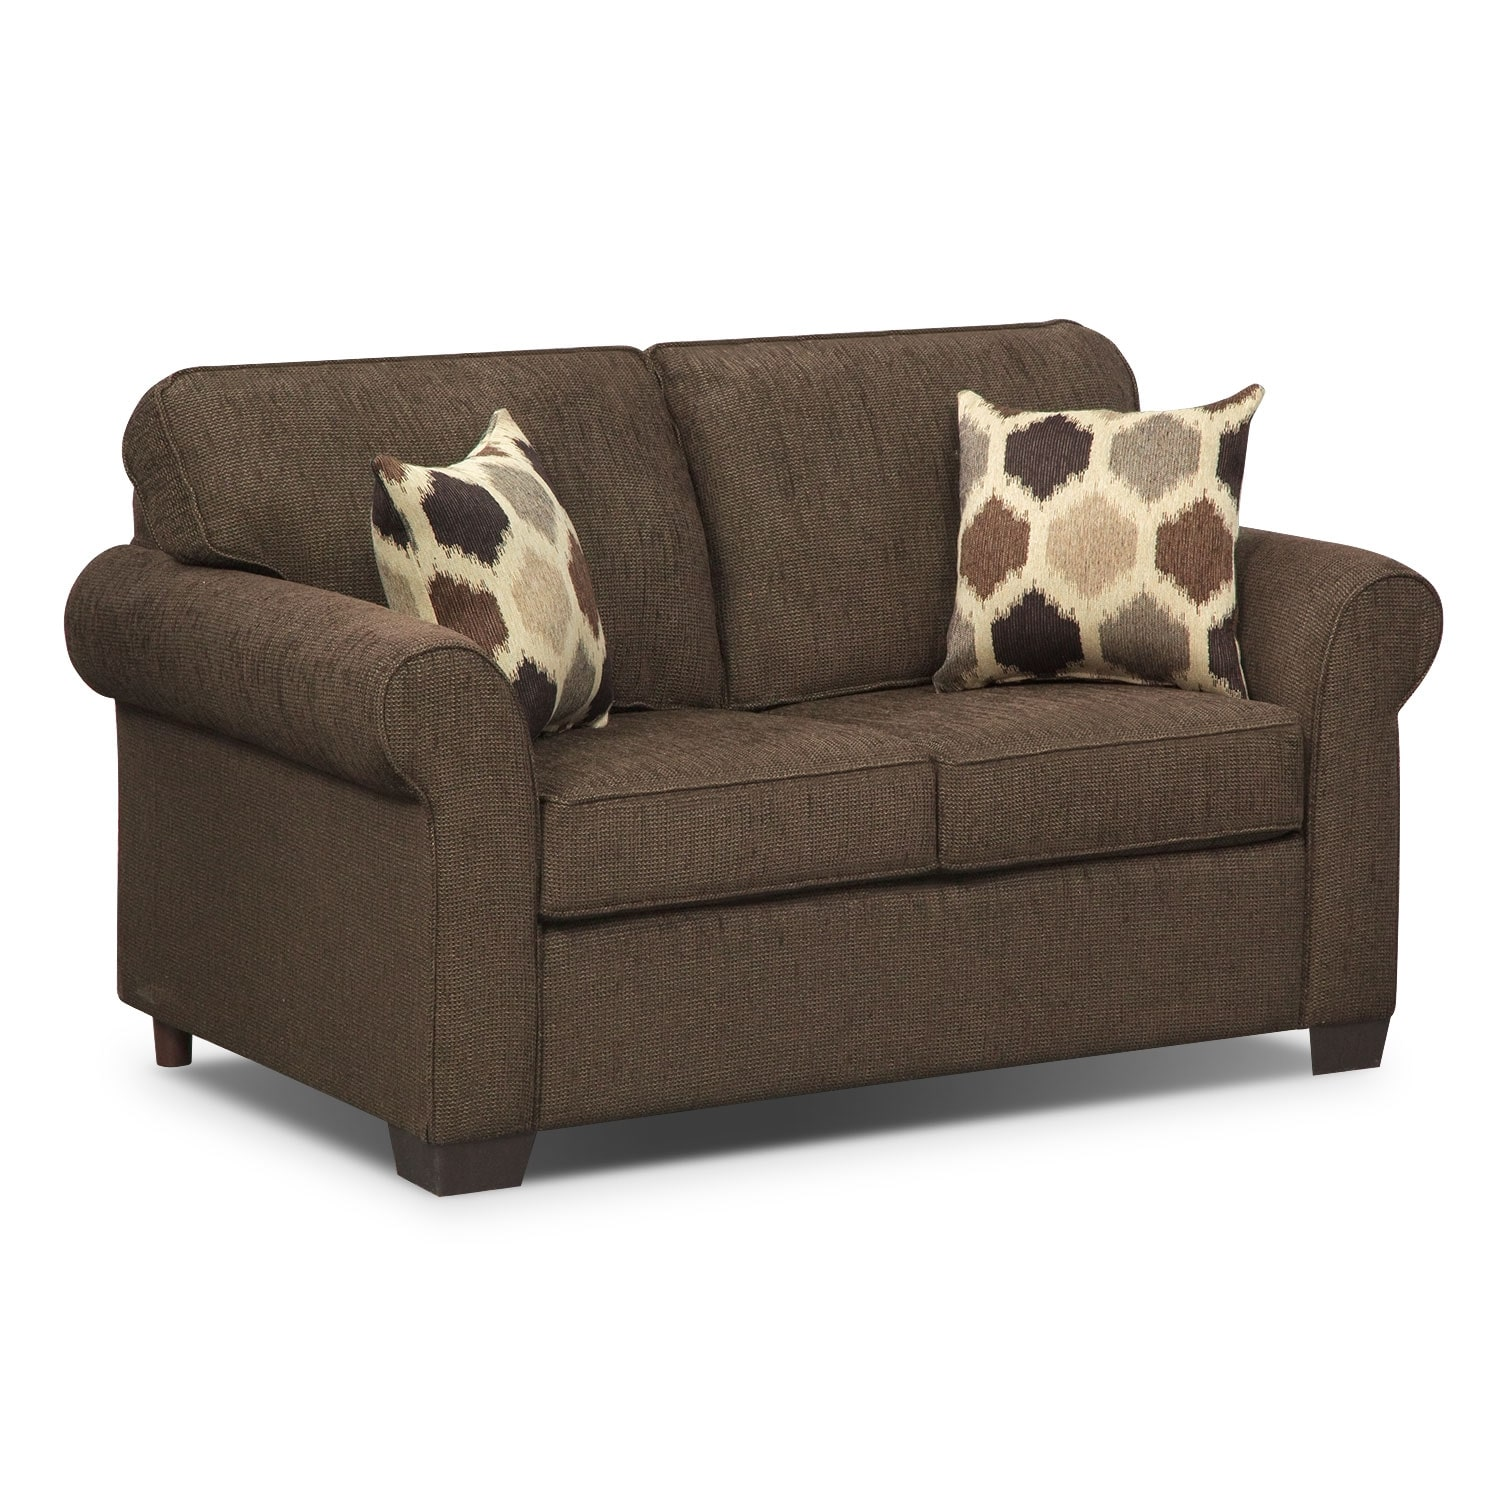 Fletcher Twin Memory Foam Sleeper Sofa Chocolate American Signature Furniture